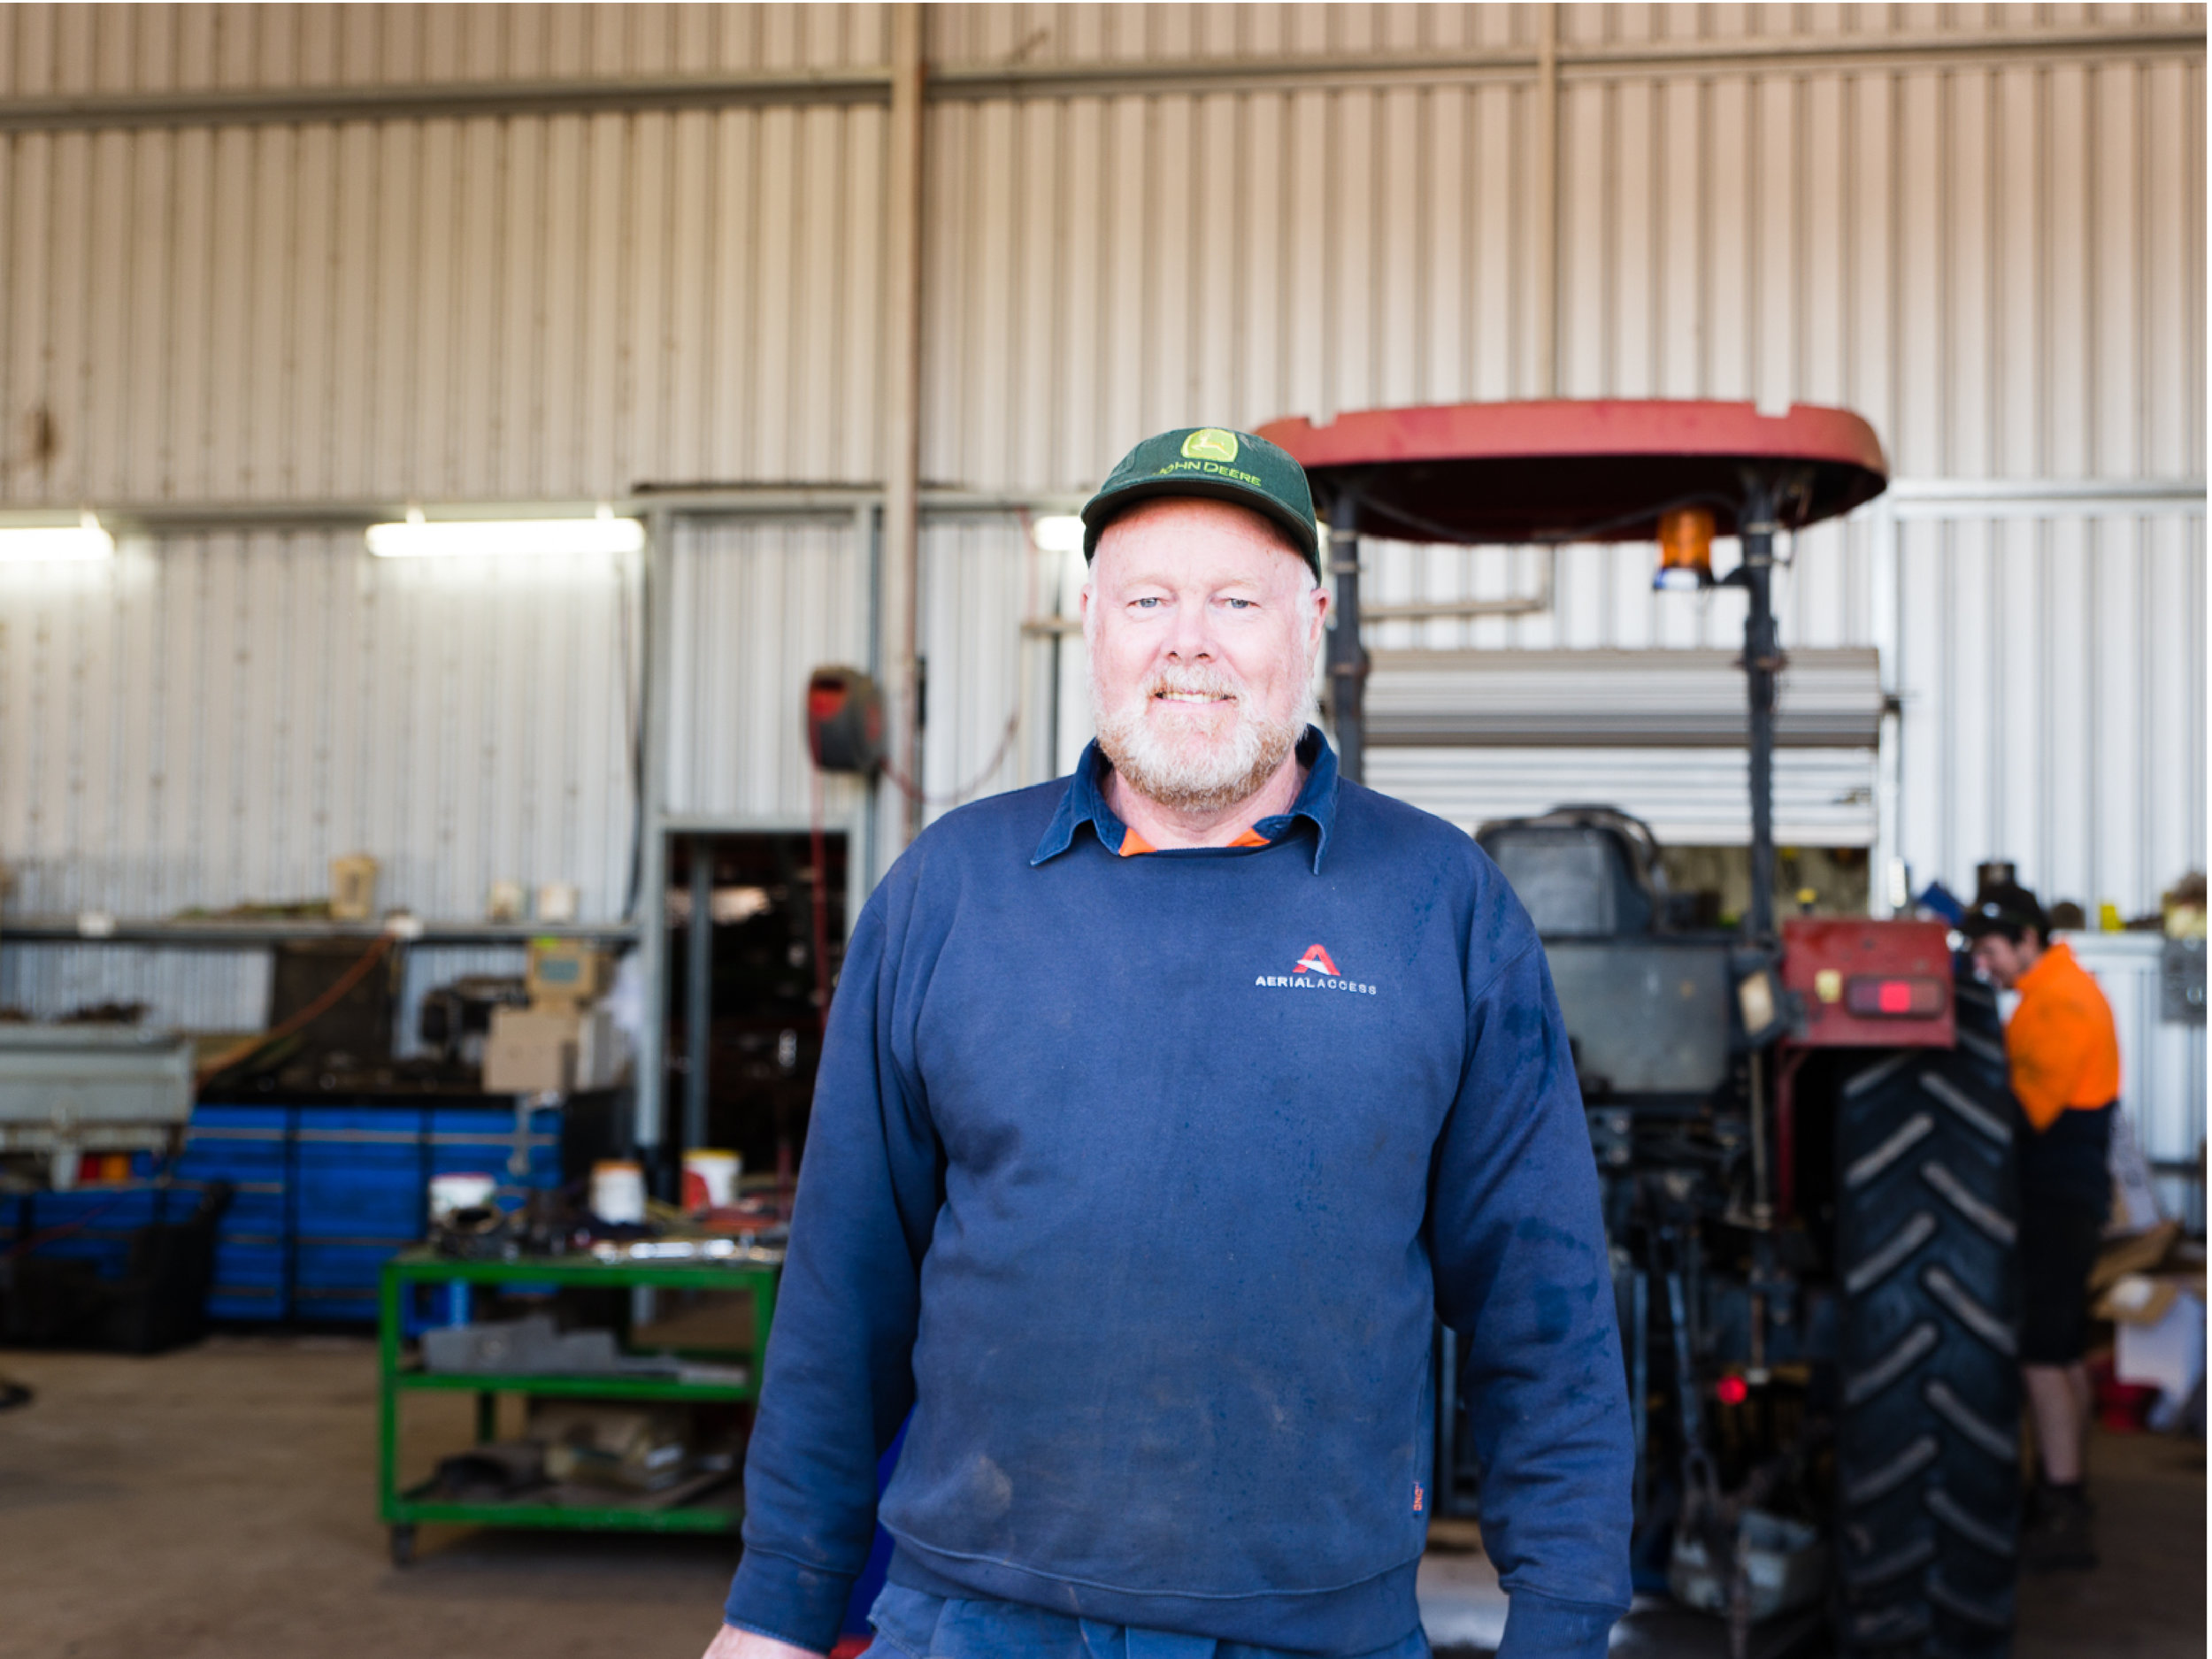 Craig is our farm mechanic. Along with his team they maintaining all of our farm vehicles and harvesters. Craig also helps design and make all of our custom fittings and fixtures for our harvesters and farm machinery.